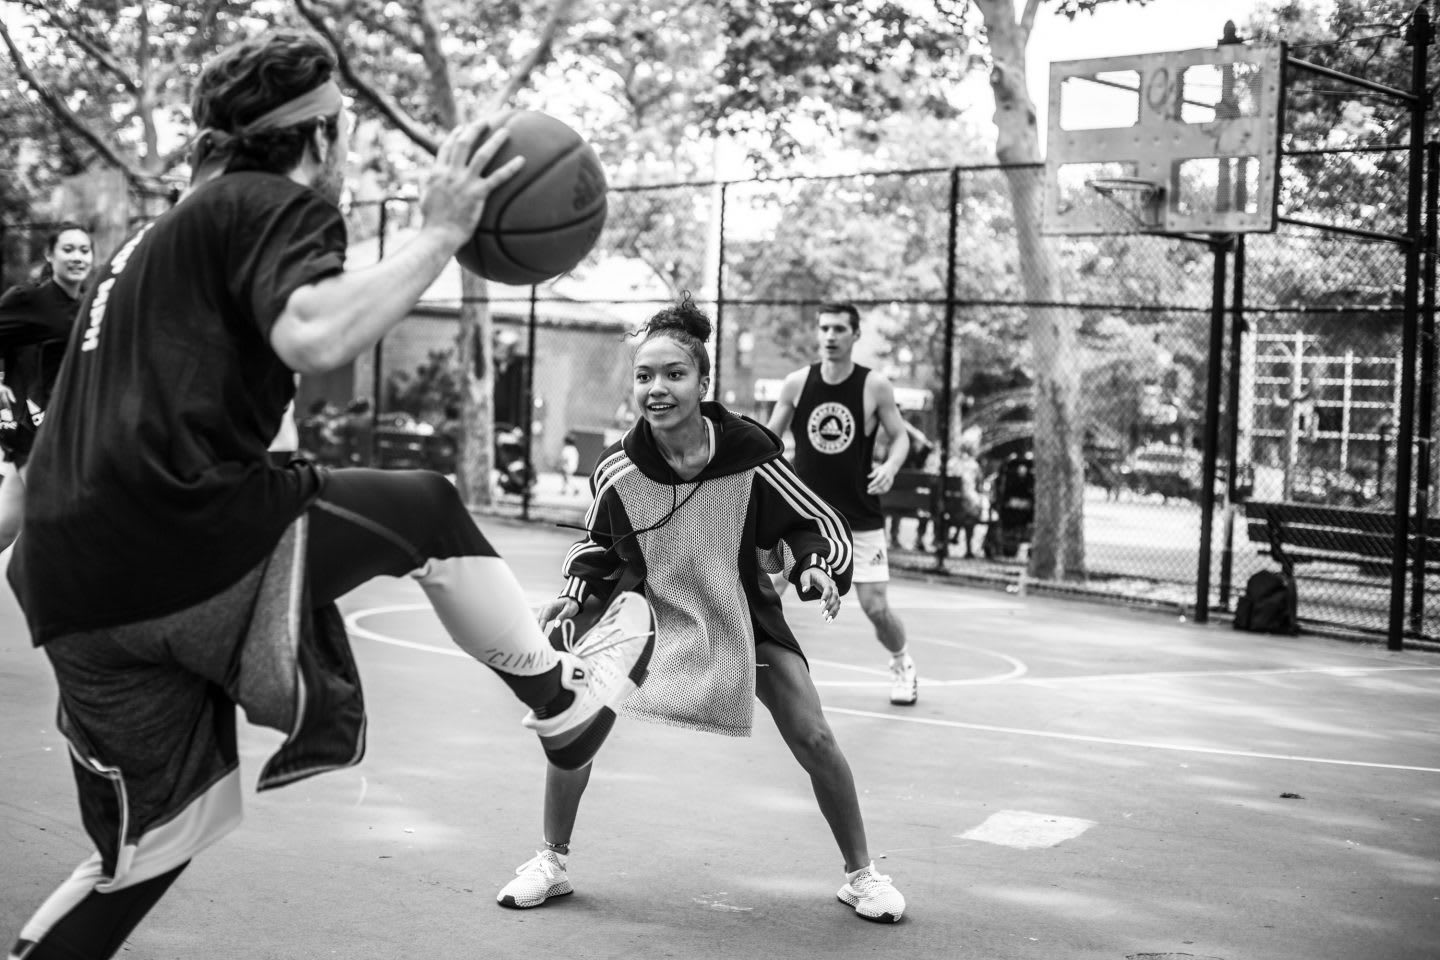 Young people playing basketball on a city court, Kim Aponi, designer, entrepreneur, sport, adidas, Brooklyn Creator Farm